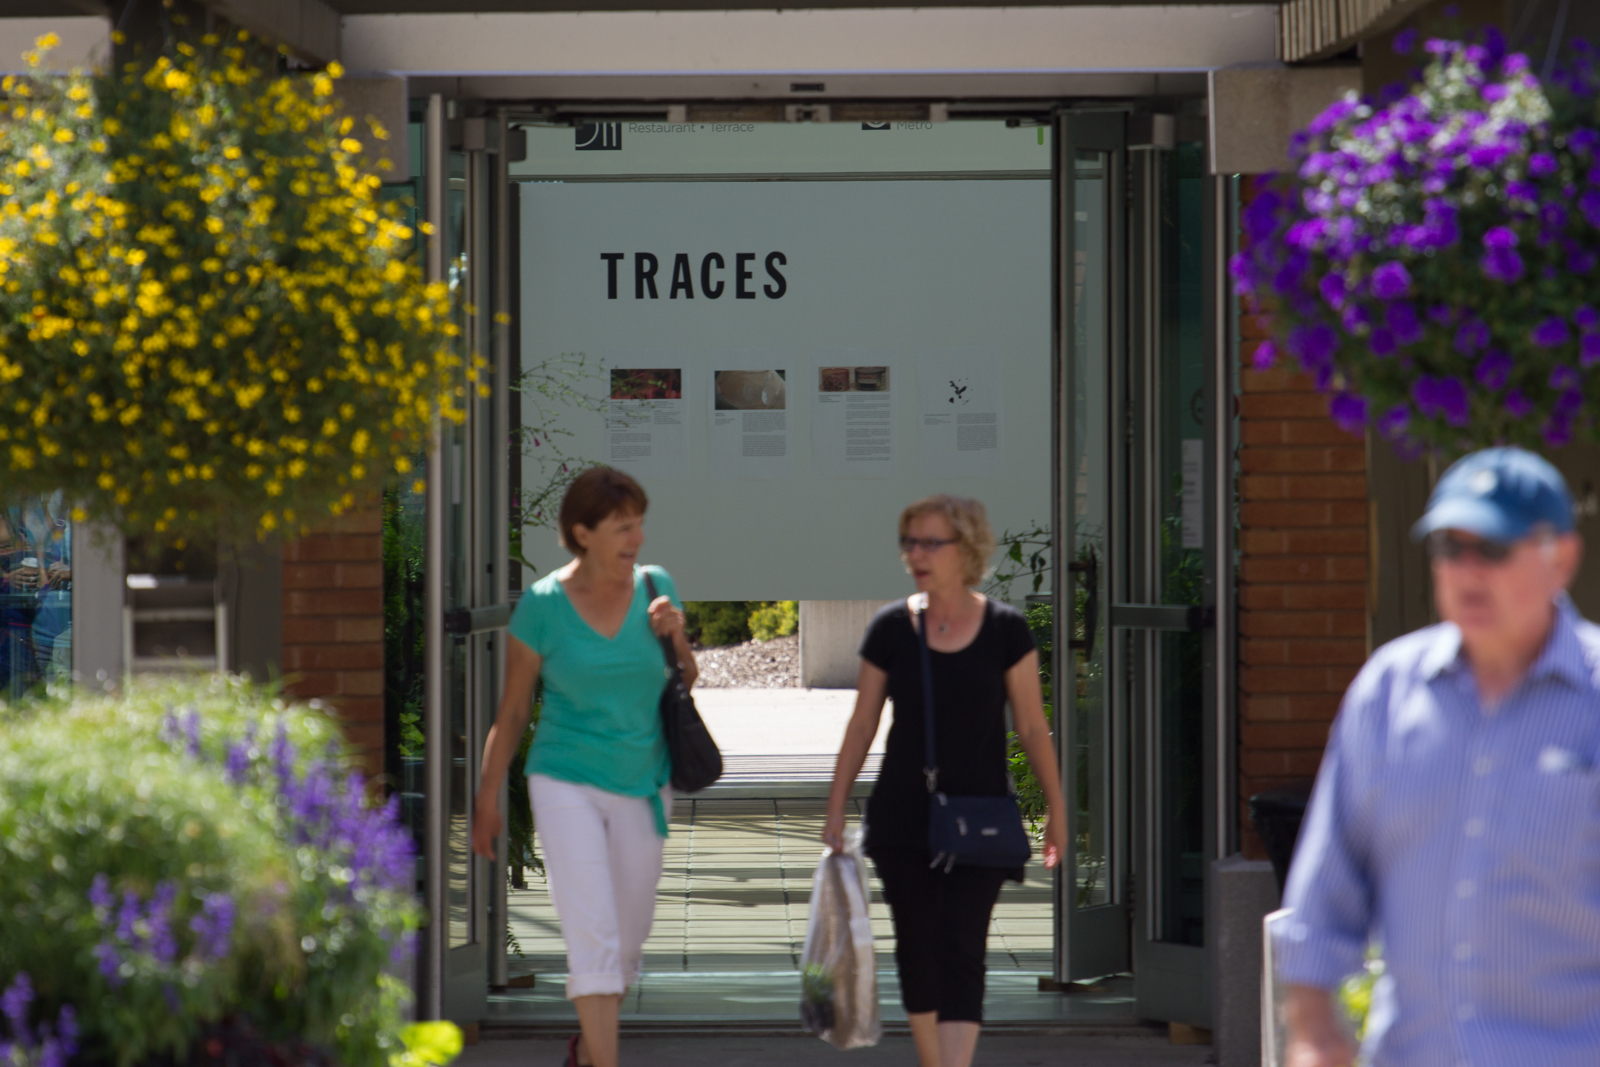 Traces Exhibition, Discovery Gallery